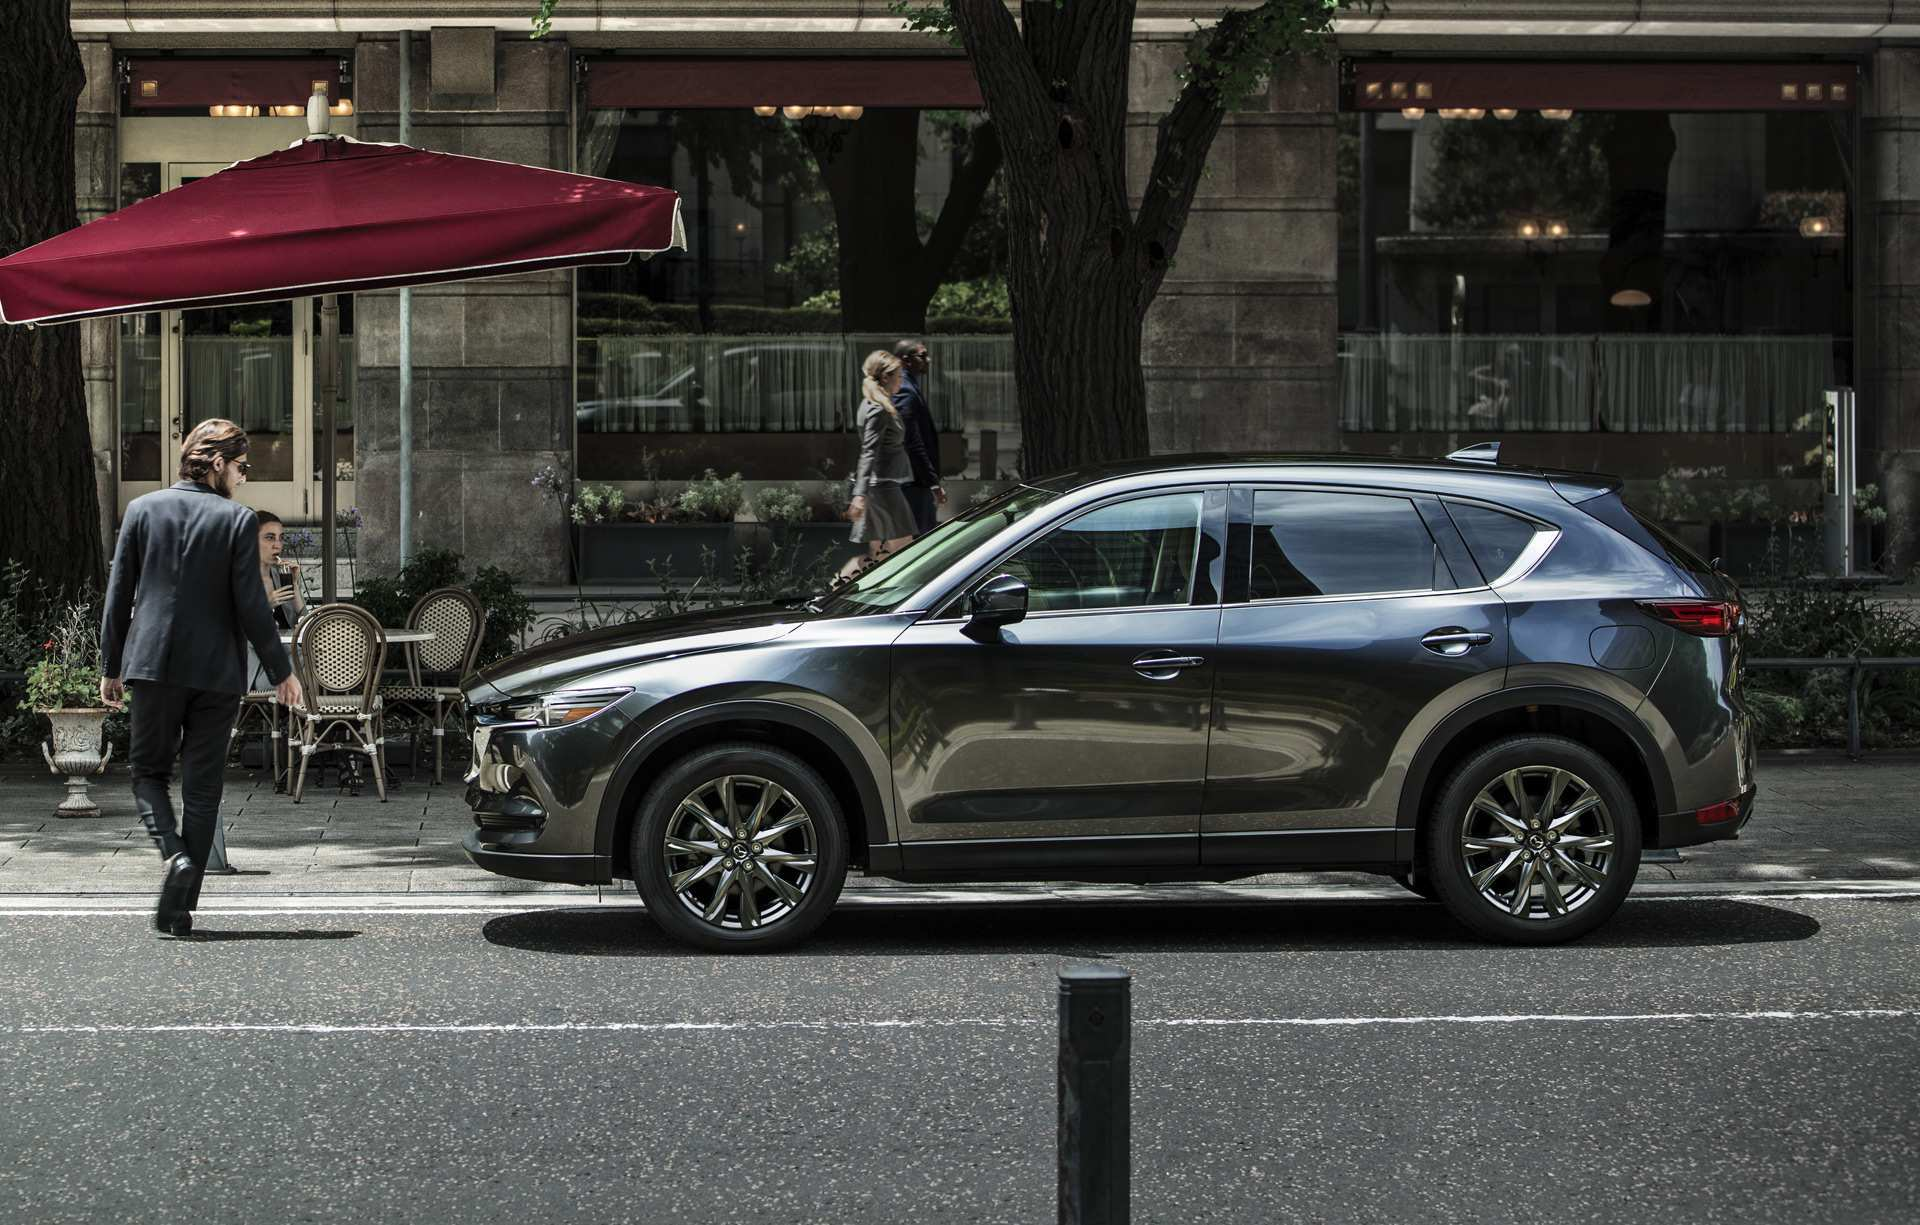 15 All New When Will The 2020 Mazda Cx 5 Be Available Overview for When Will The 2020 Mazda Cx 5 Be Available